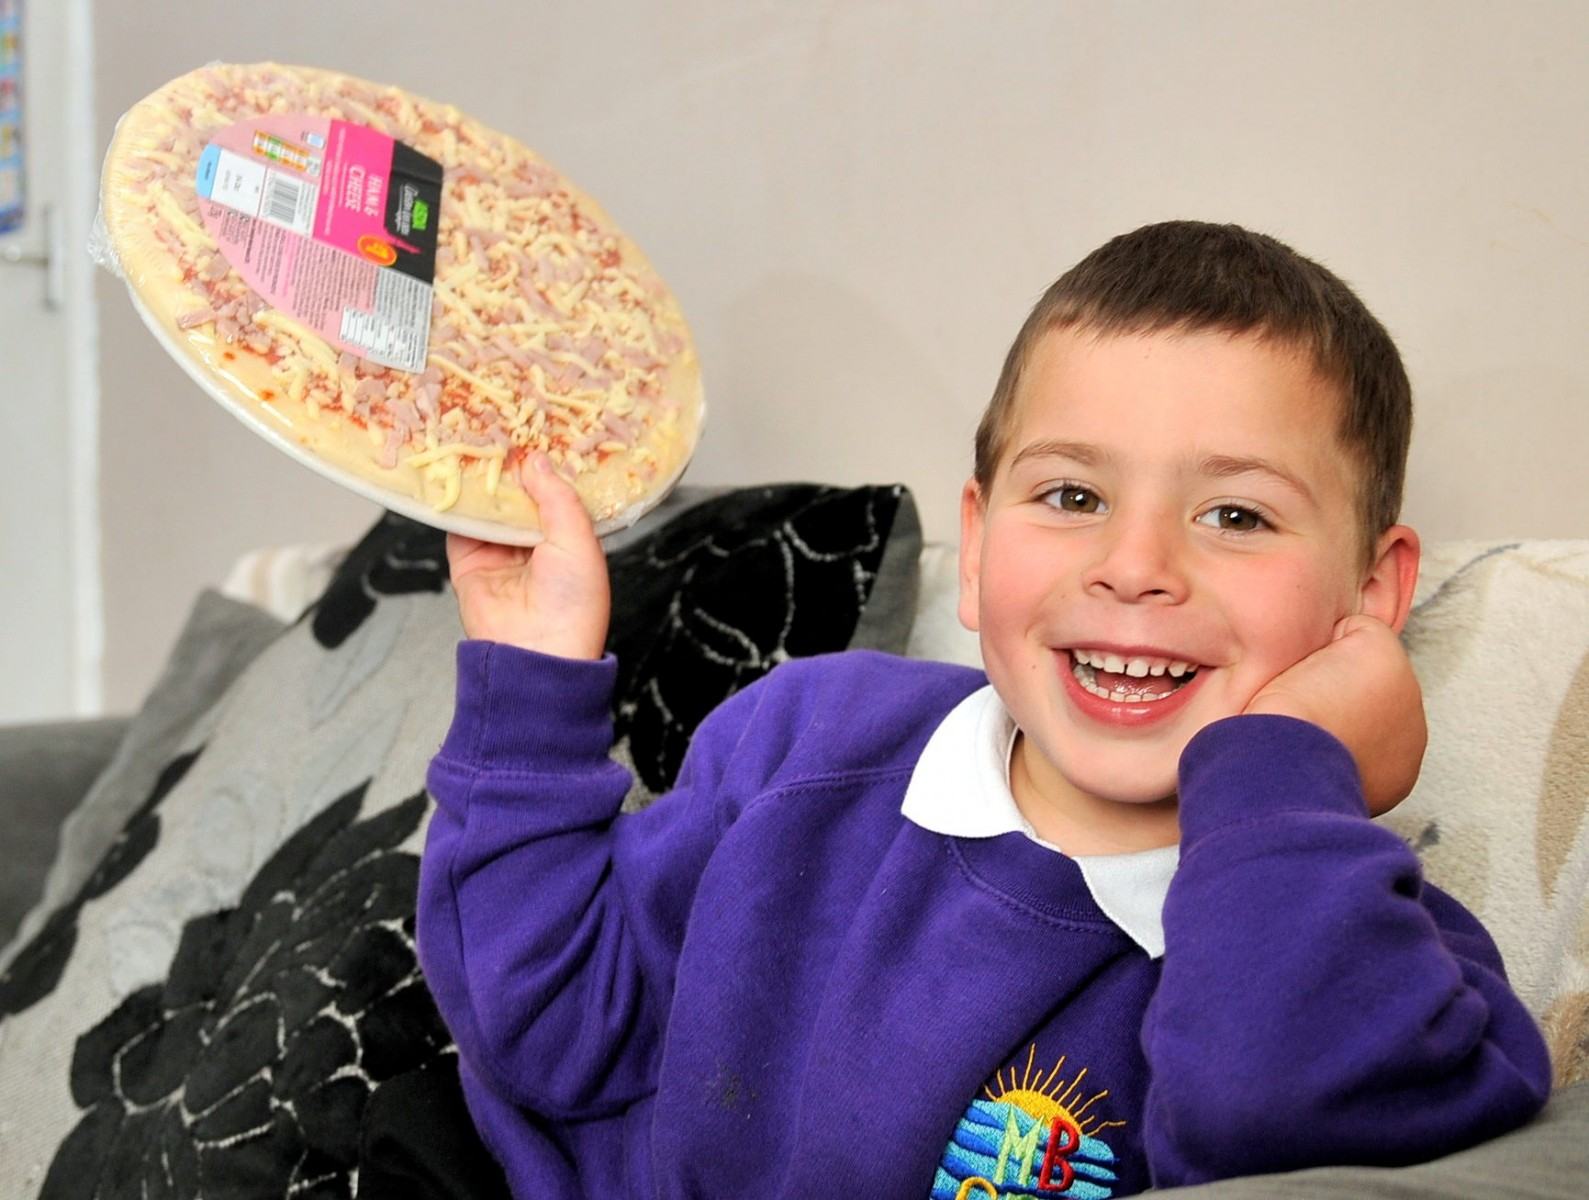 Schoolboy brings homeless man to tears by sharing his last slice of pizza